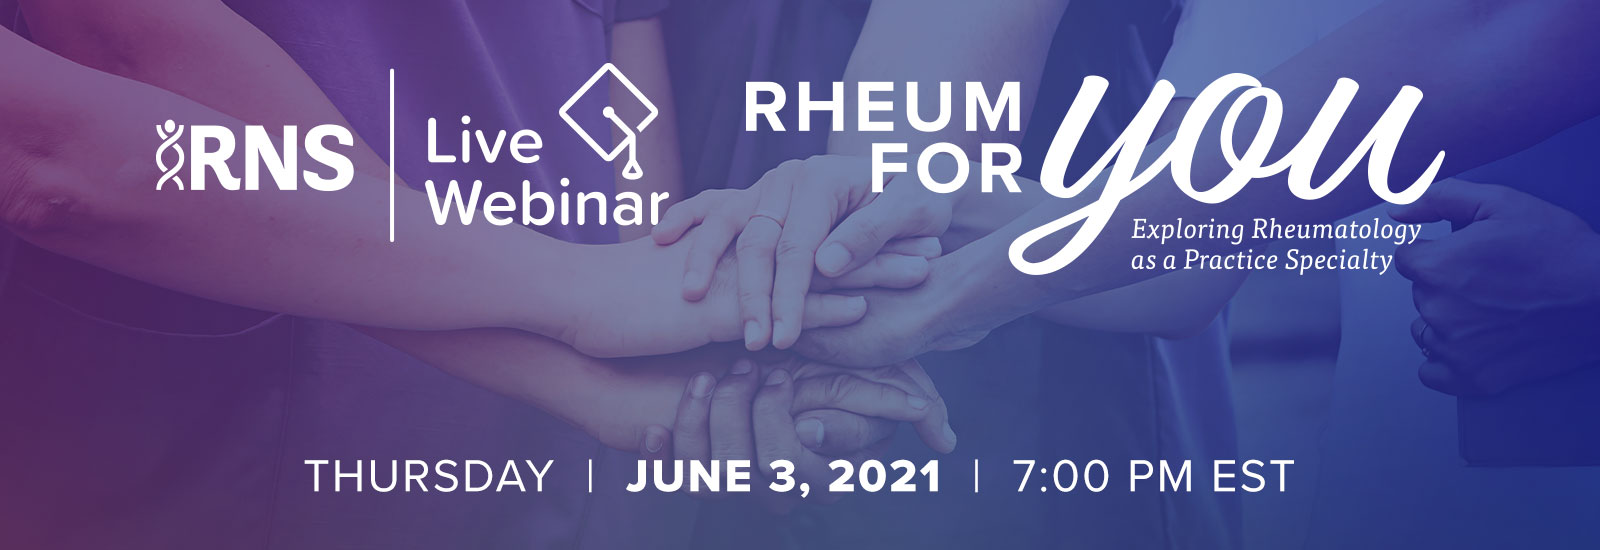 2021 RNS Live Webinar: Rheum for You - June 3, 2021